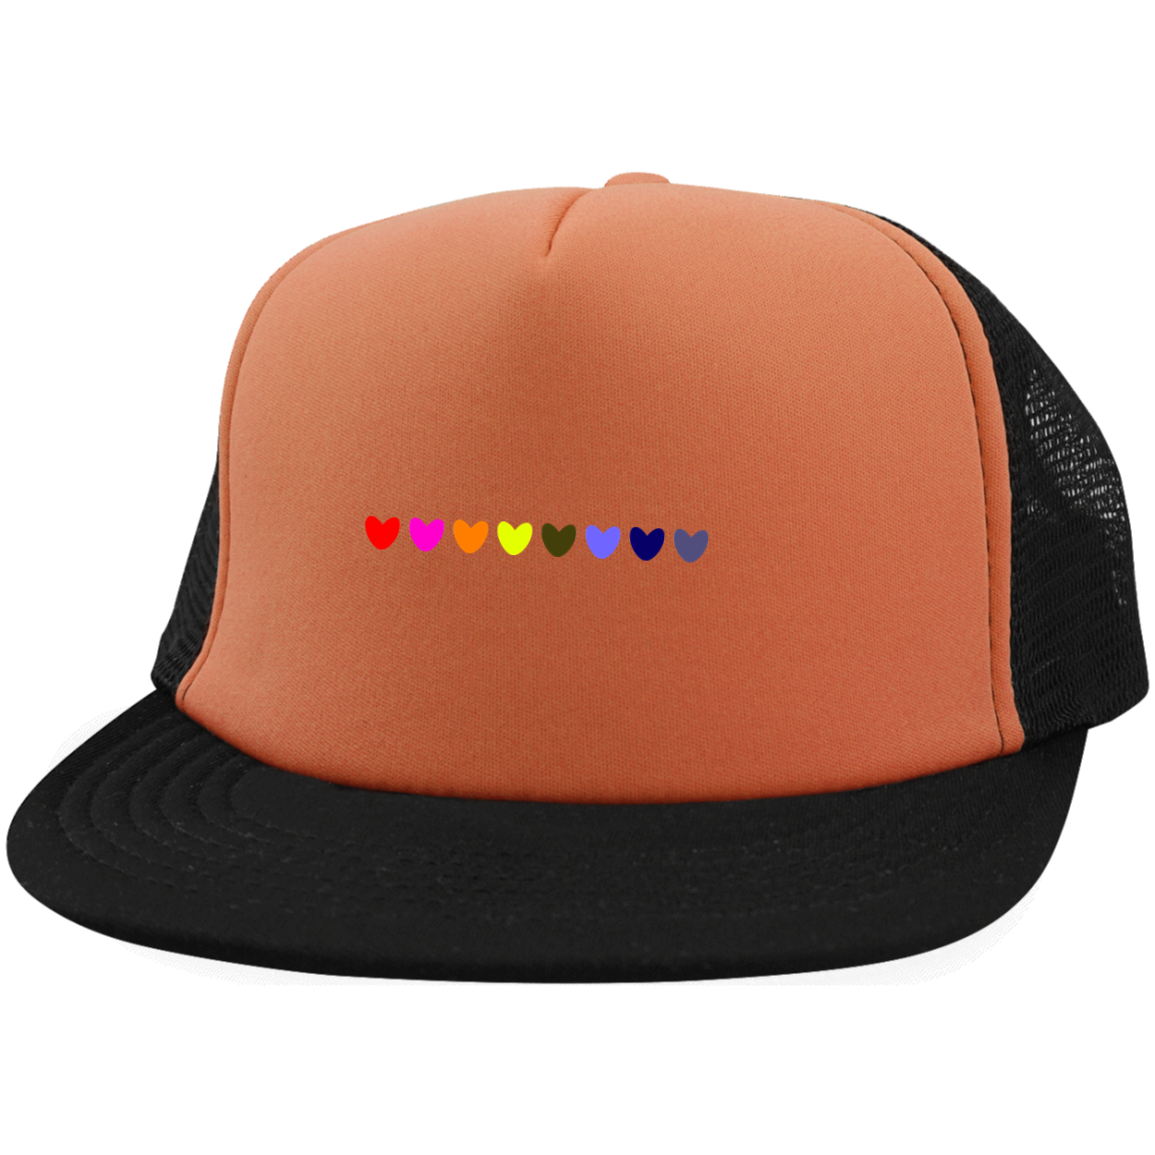 Rainbow Hearts District Trucker Hat with Snapback